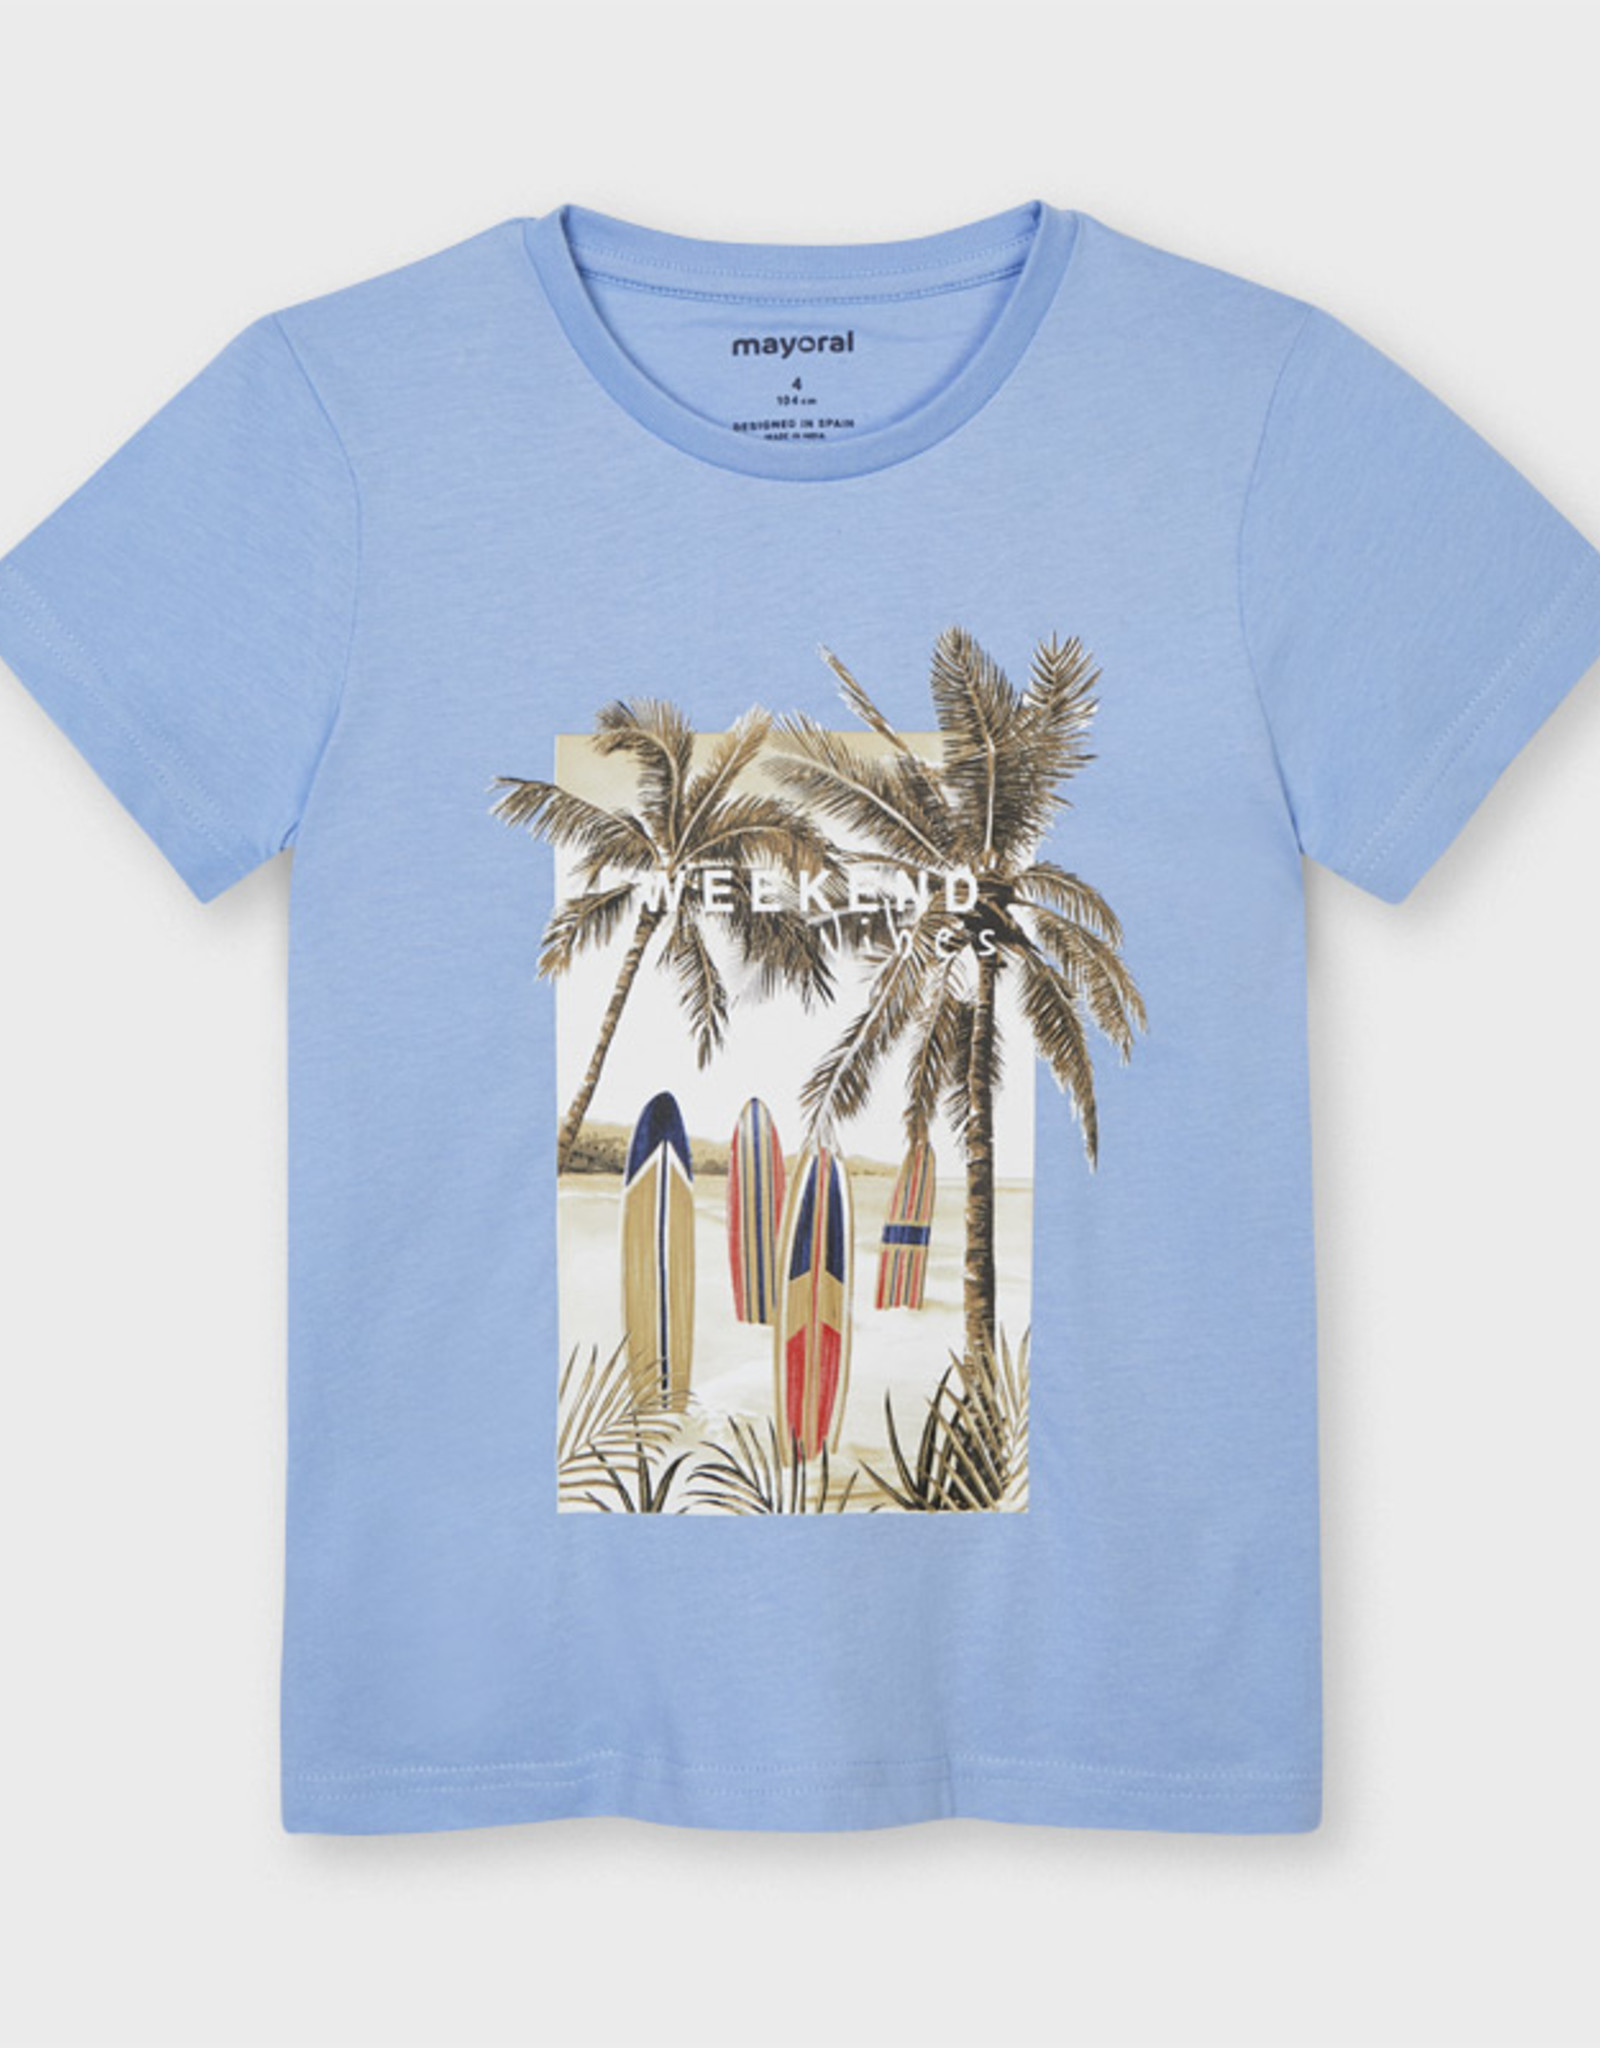 Mayoral SP21 B Weekend Vibes T-Shirt